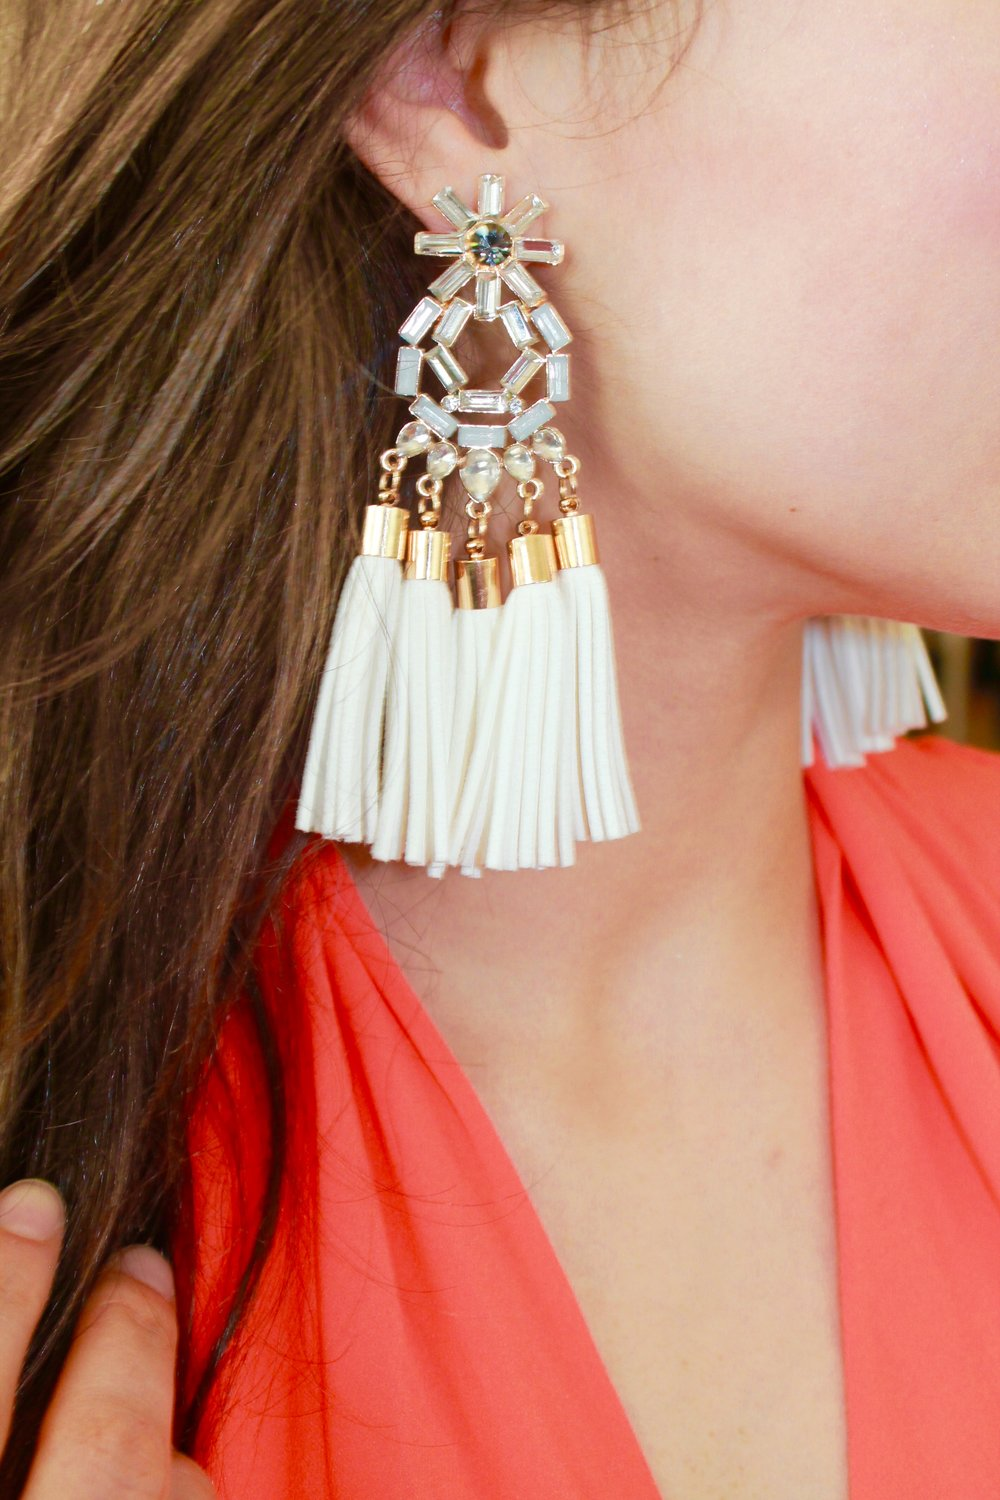 Stone & Tassel Earrings from bebe